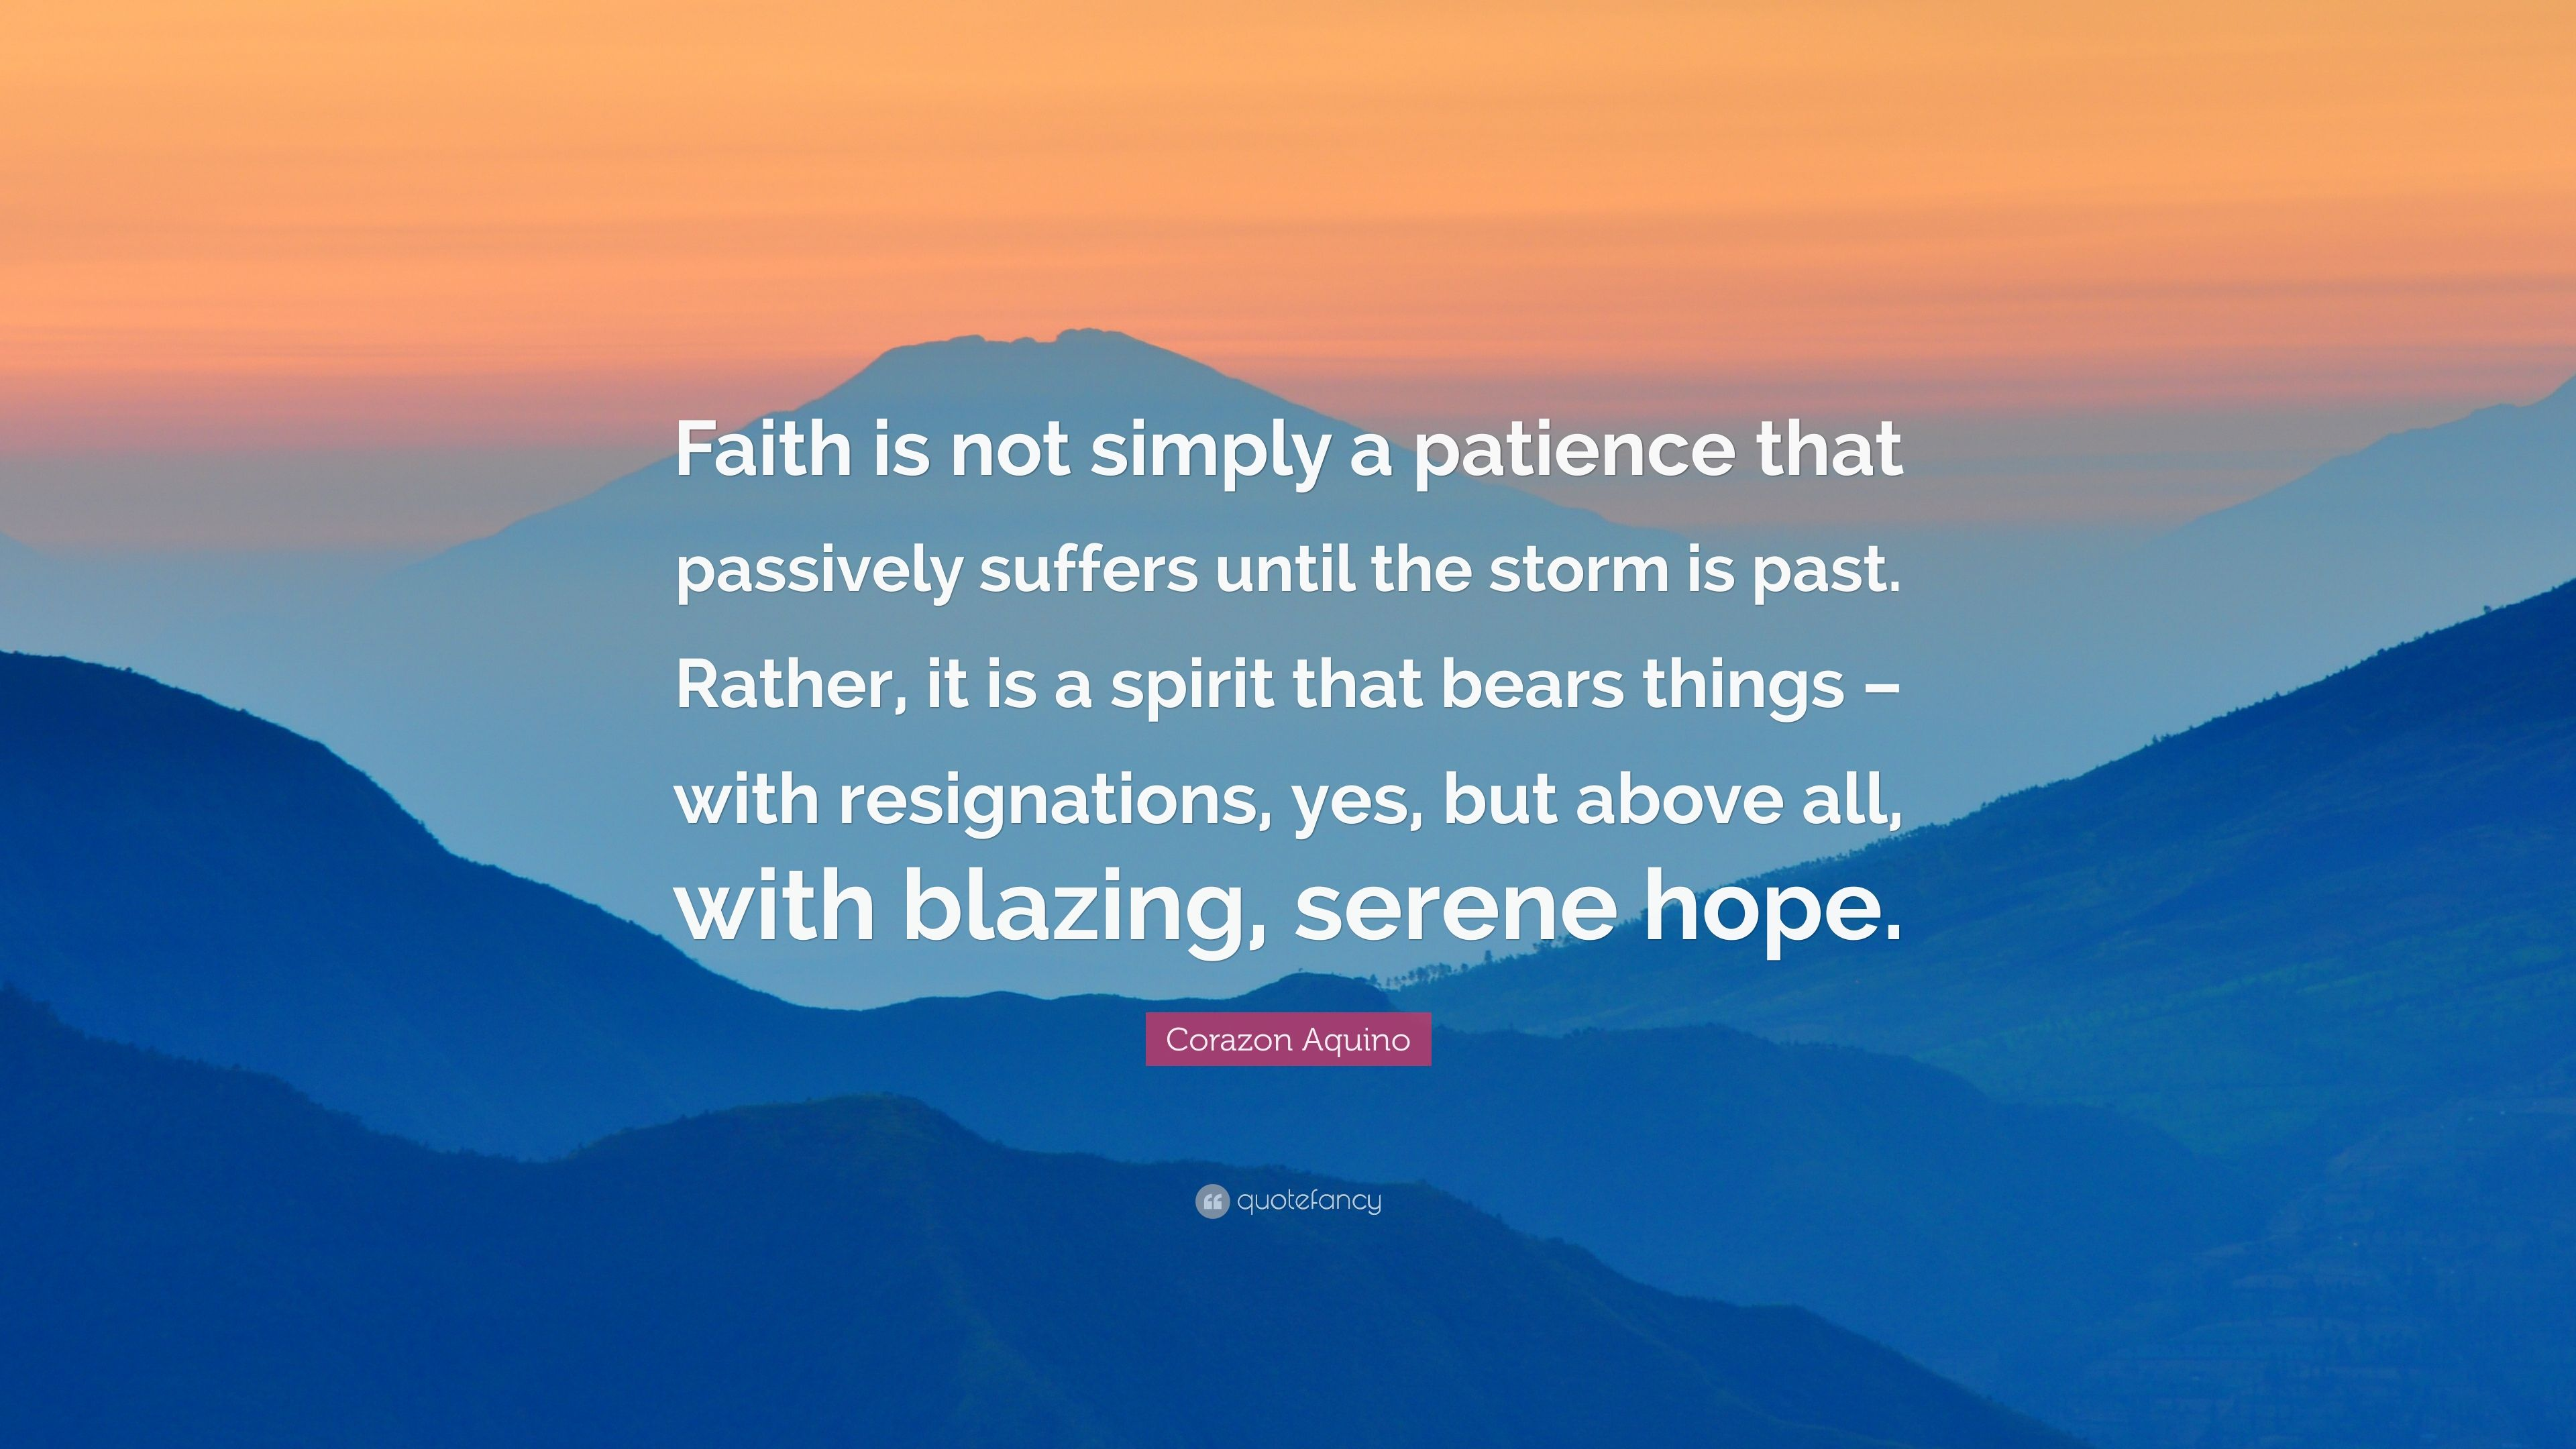 Corazon Aquino Quote: U201cFaith Is Not Simply A Patience That Passively  Suffers Until The